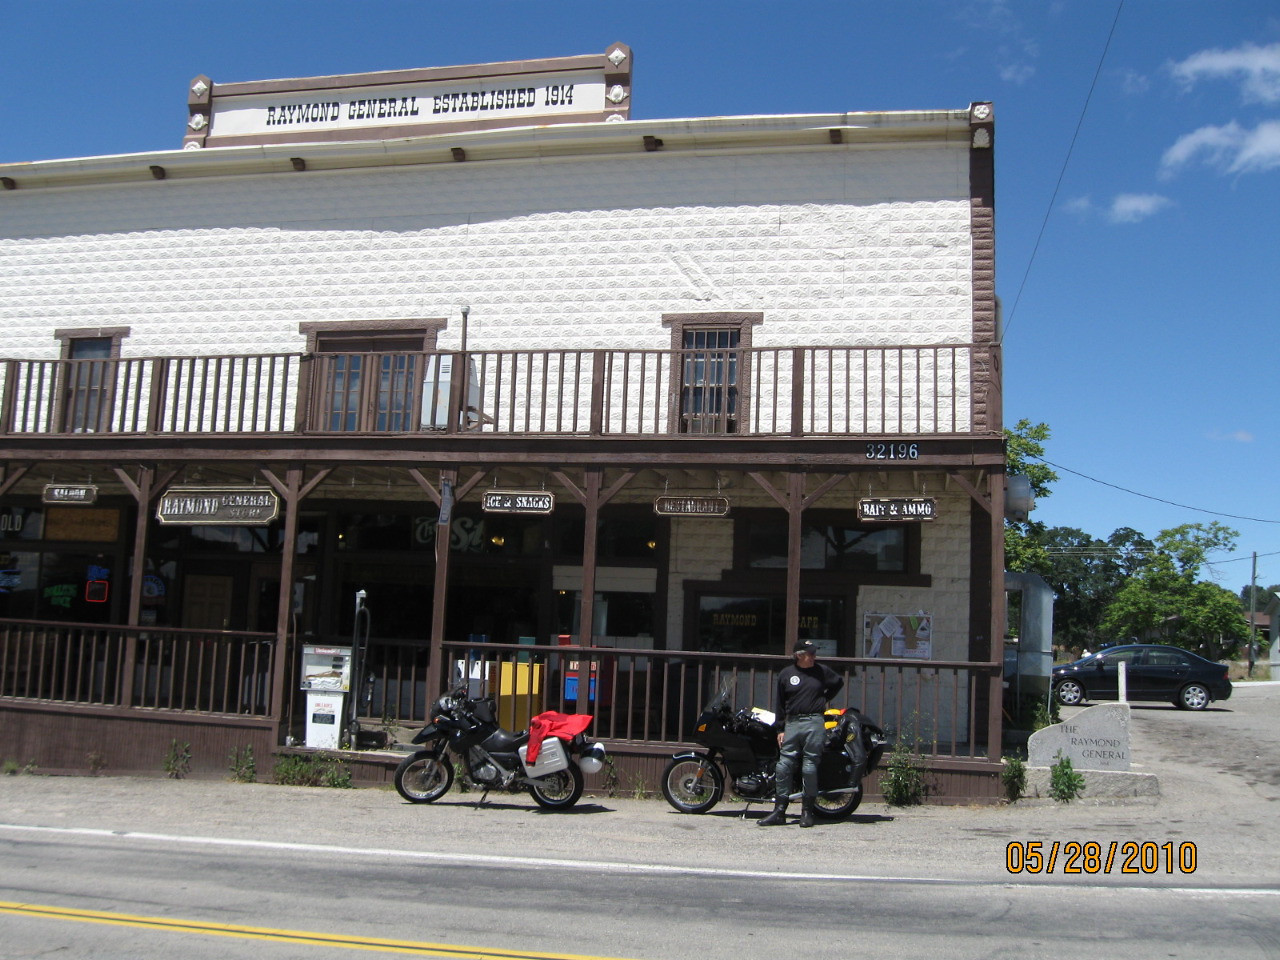 Nicholas K. Brown outside the general store.